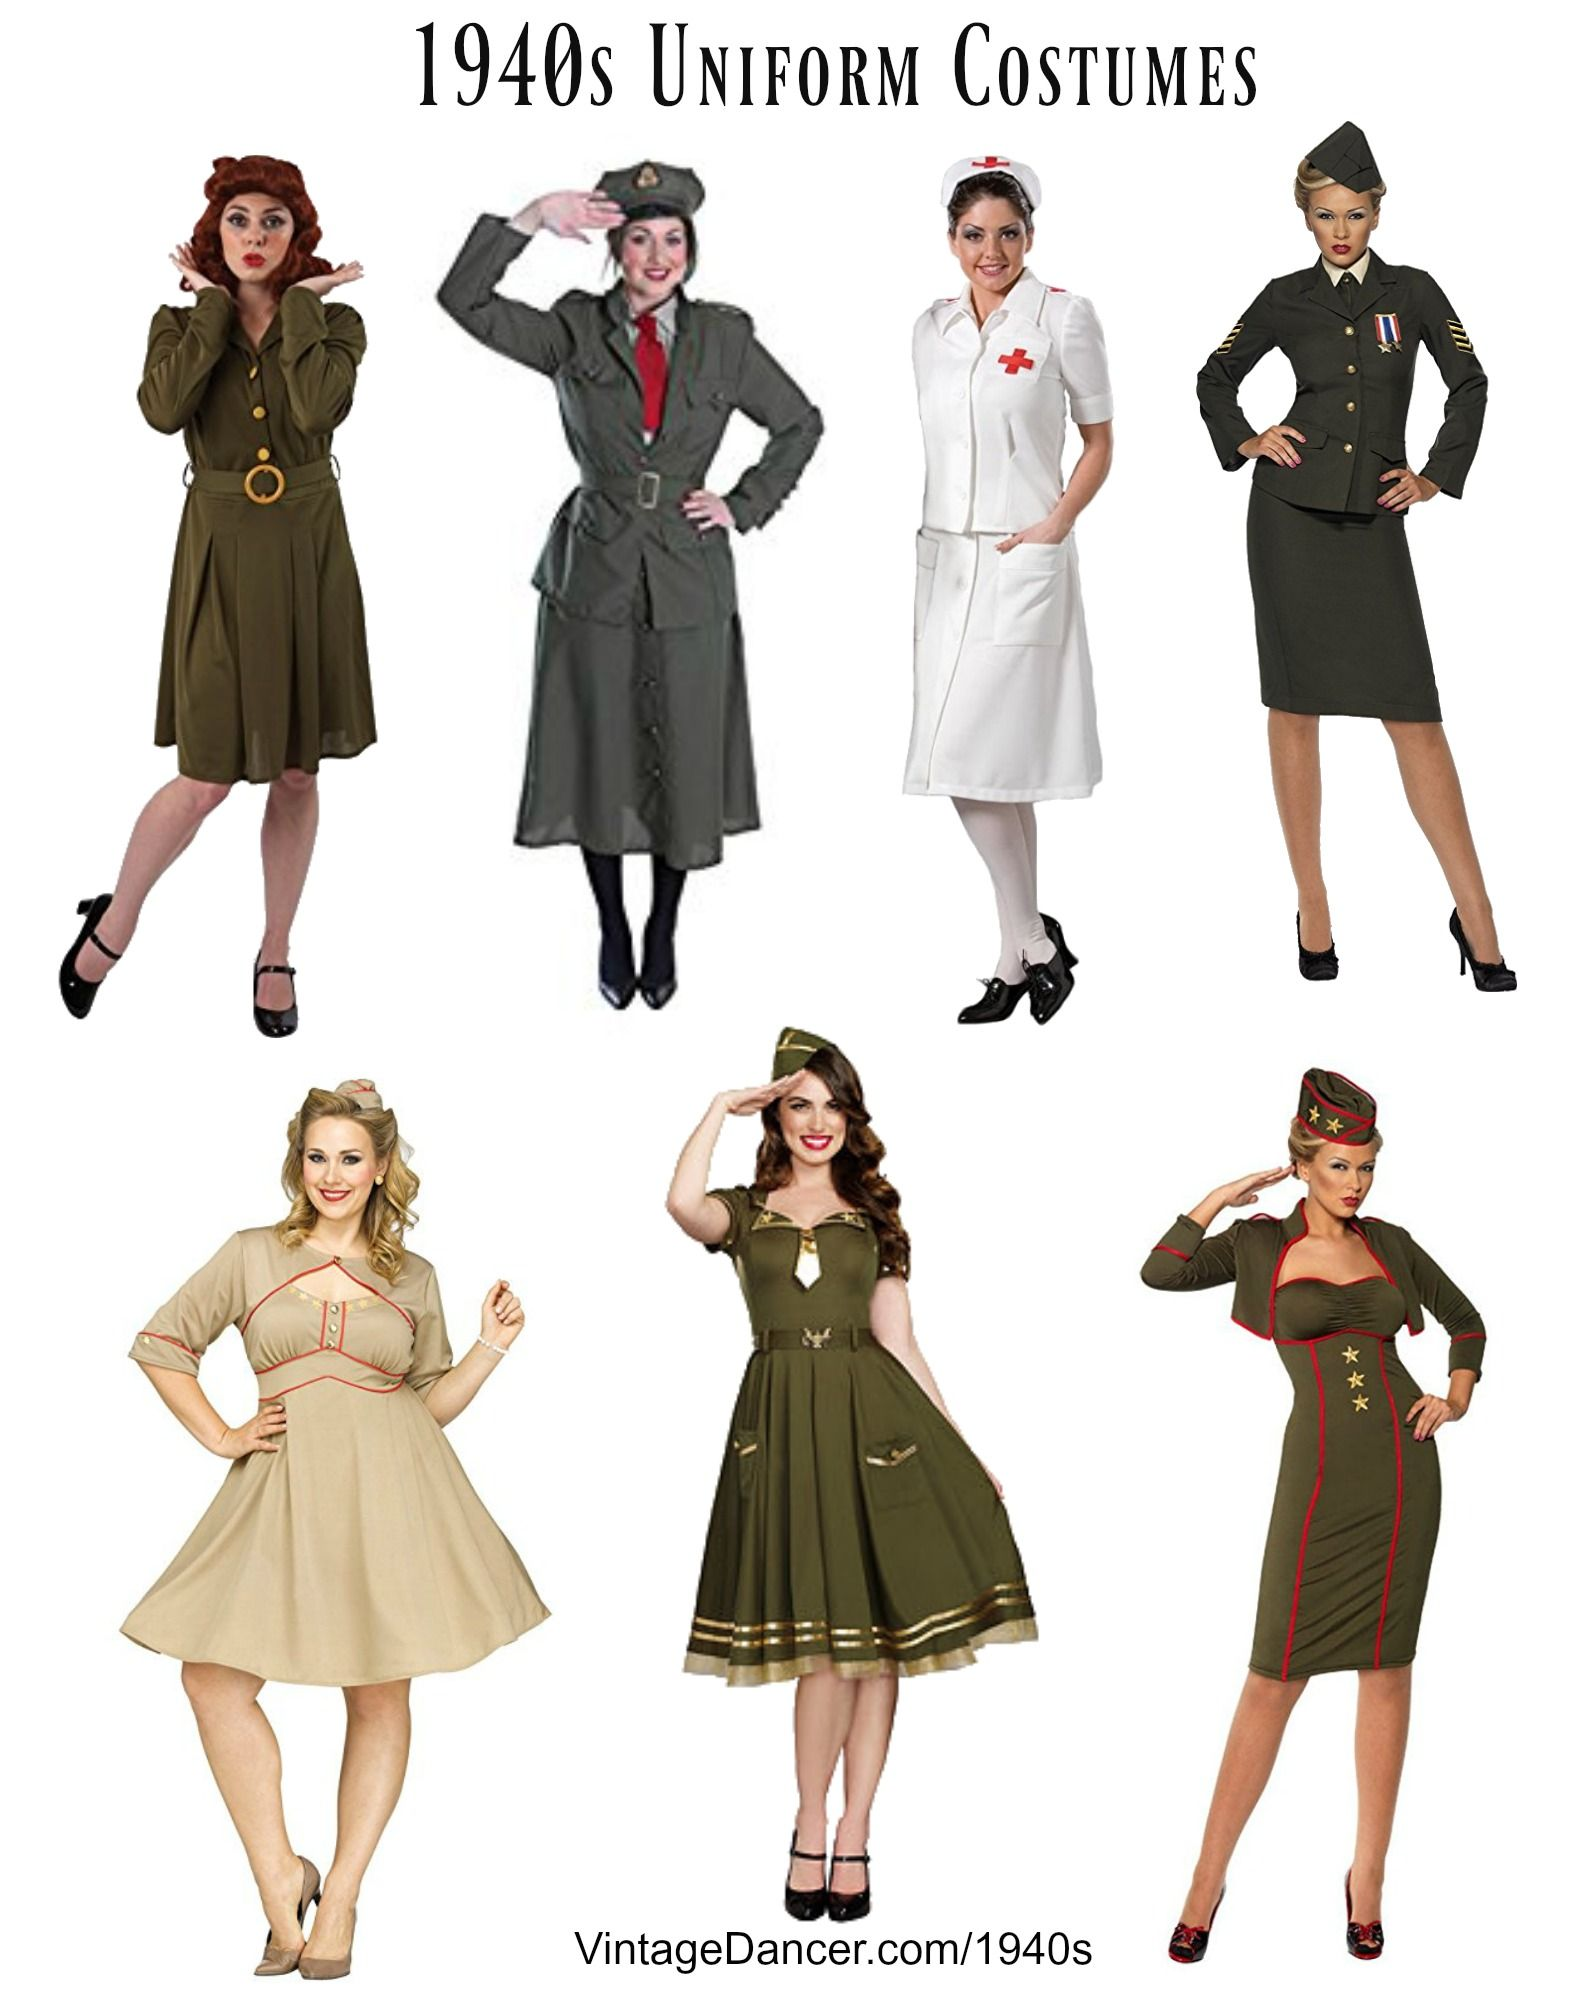 1940s WWII Uniform costumes - WAC WAVES Nurse Army Navy etc Halloween Costumes  sc 1 st  Pinterest & 50 Vintage Halloween Costume Ideas | Vintage Halloween Costumes ...